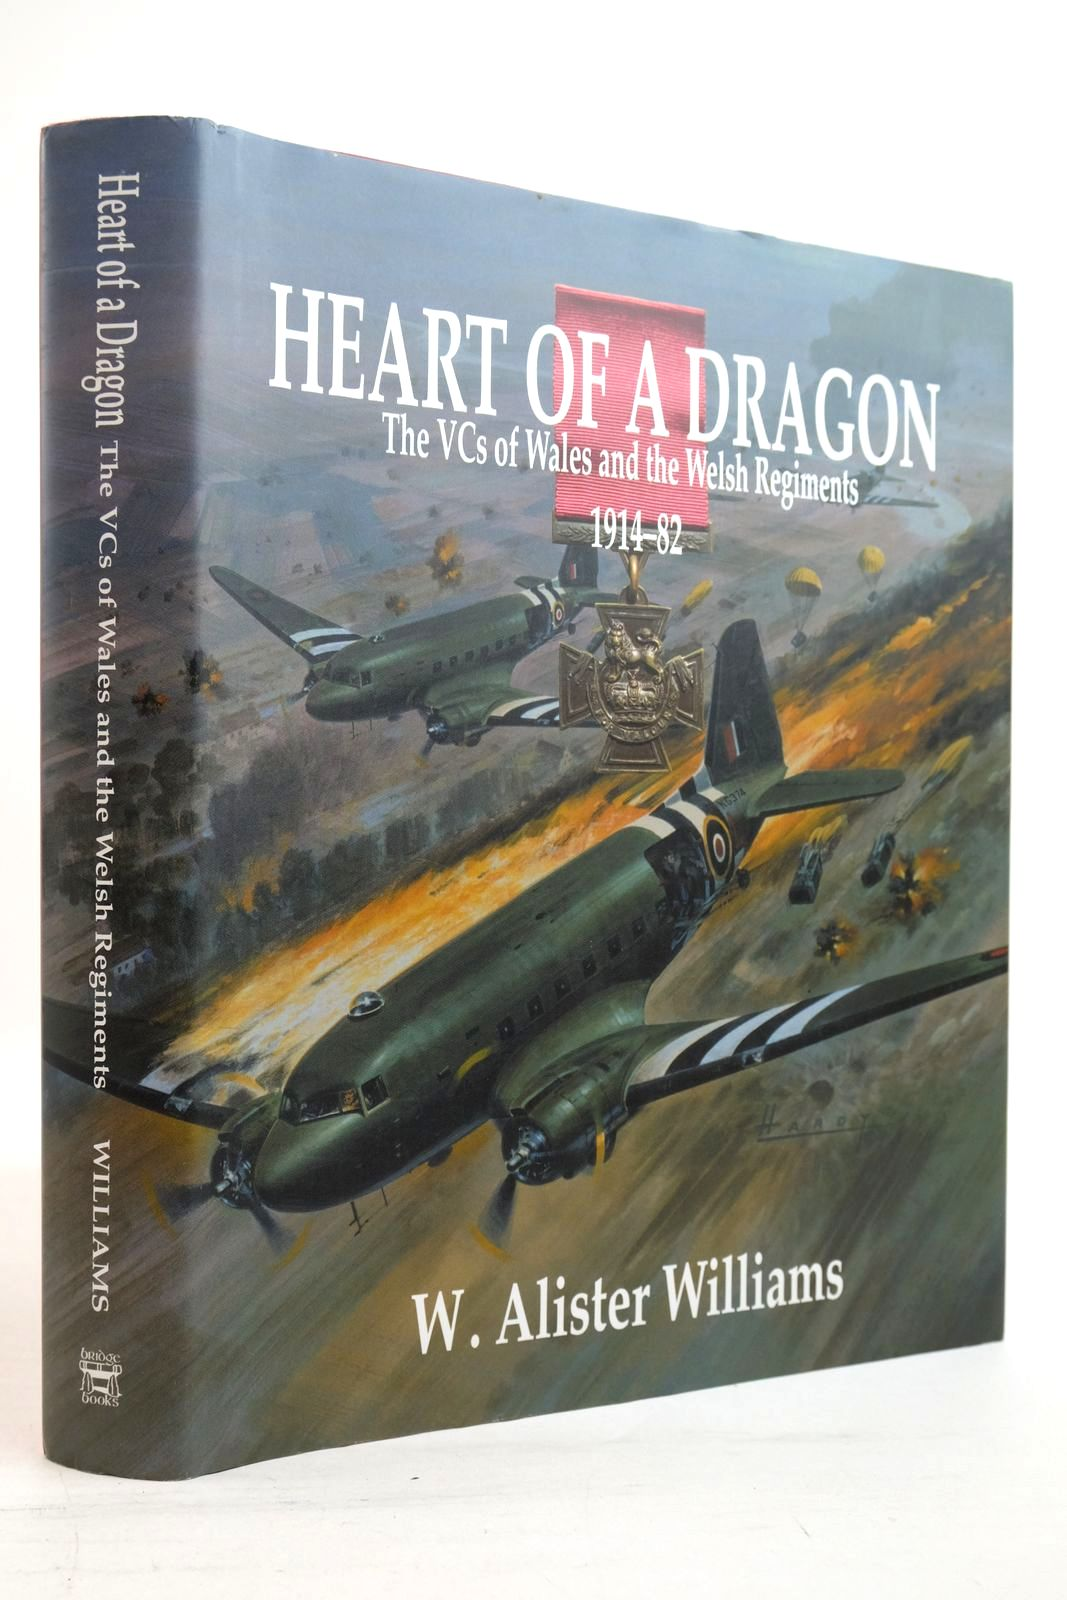 Photo of HEART OF A DRAGON THE VCS OF WALES AND THE WELSH REGIMENTS 1914-82 written by Williams, W. Alister published by Bridge Books (STOCK CODE: 2134491)  for sale by Stella & Rose's Books